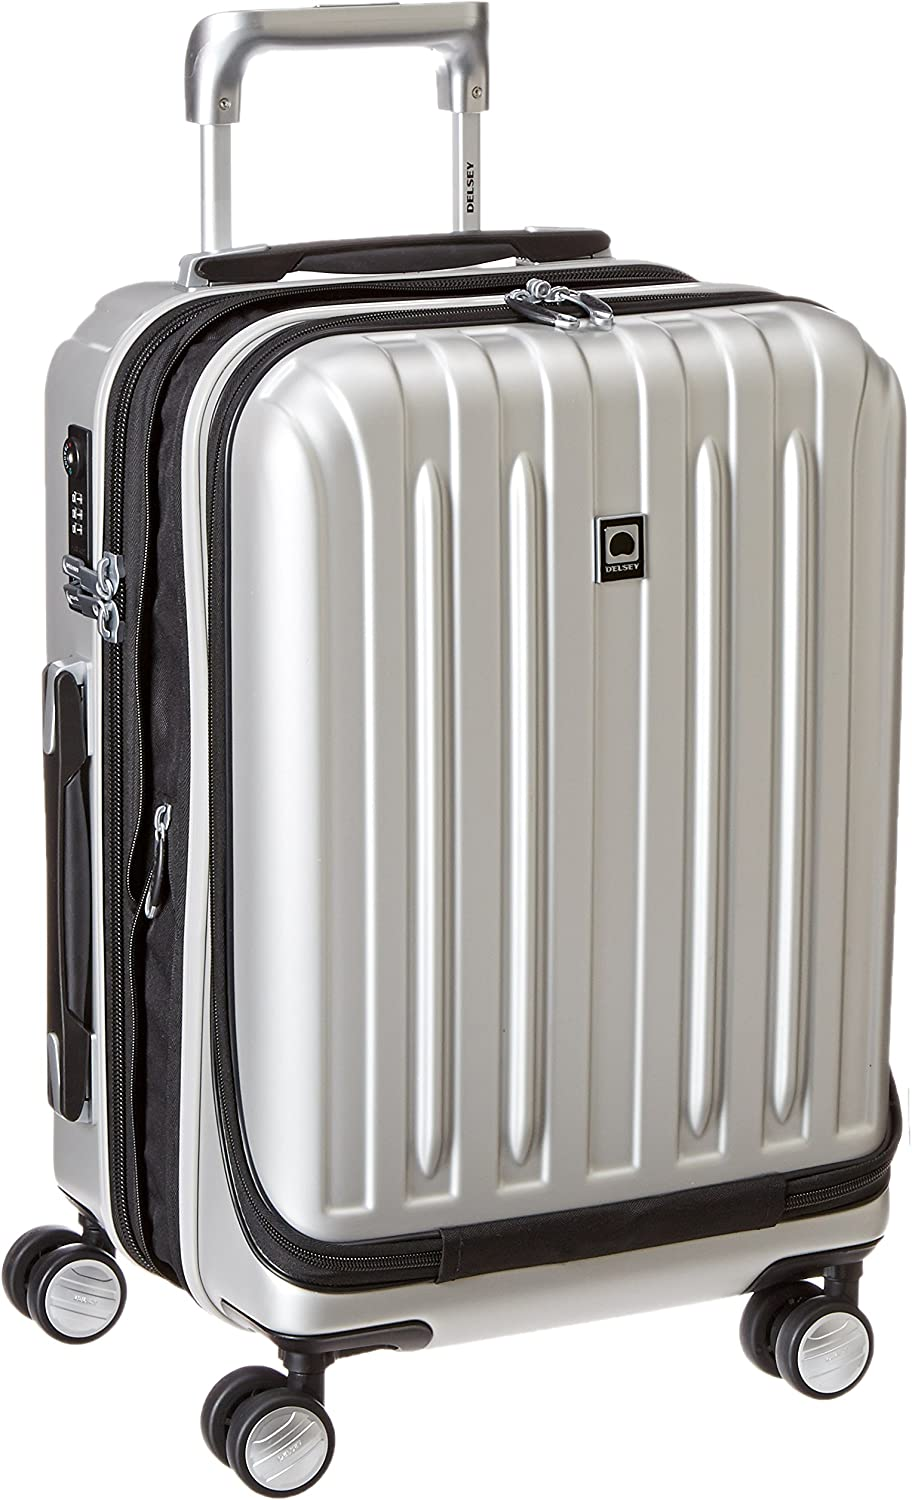 DELSEY Paris Titanium International Carry-on, Silver